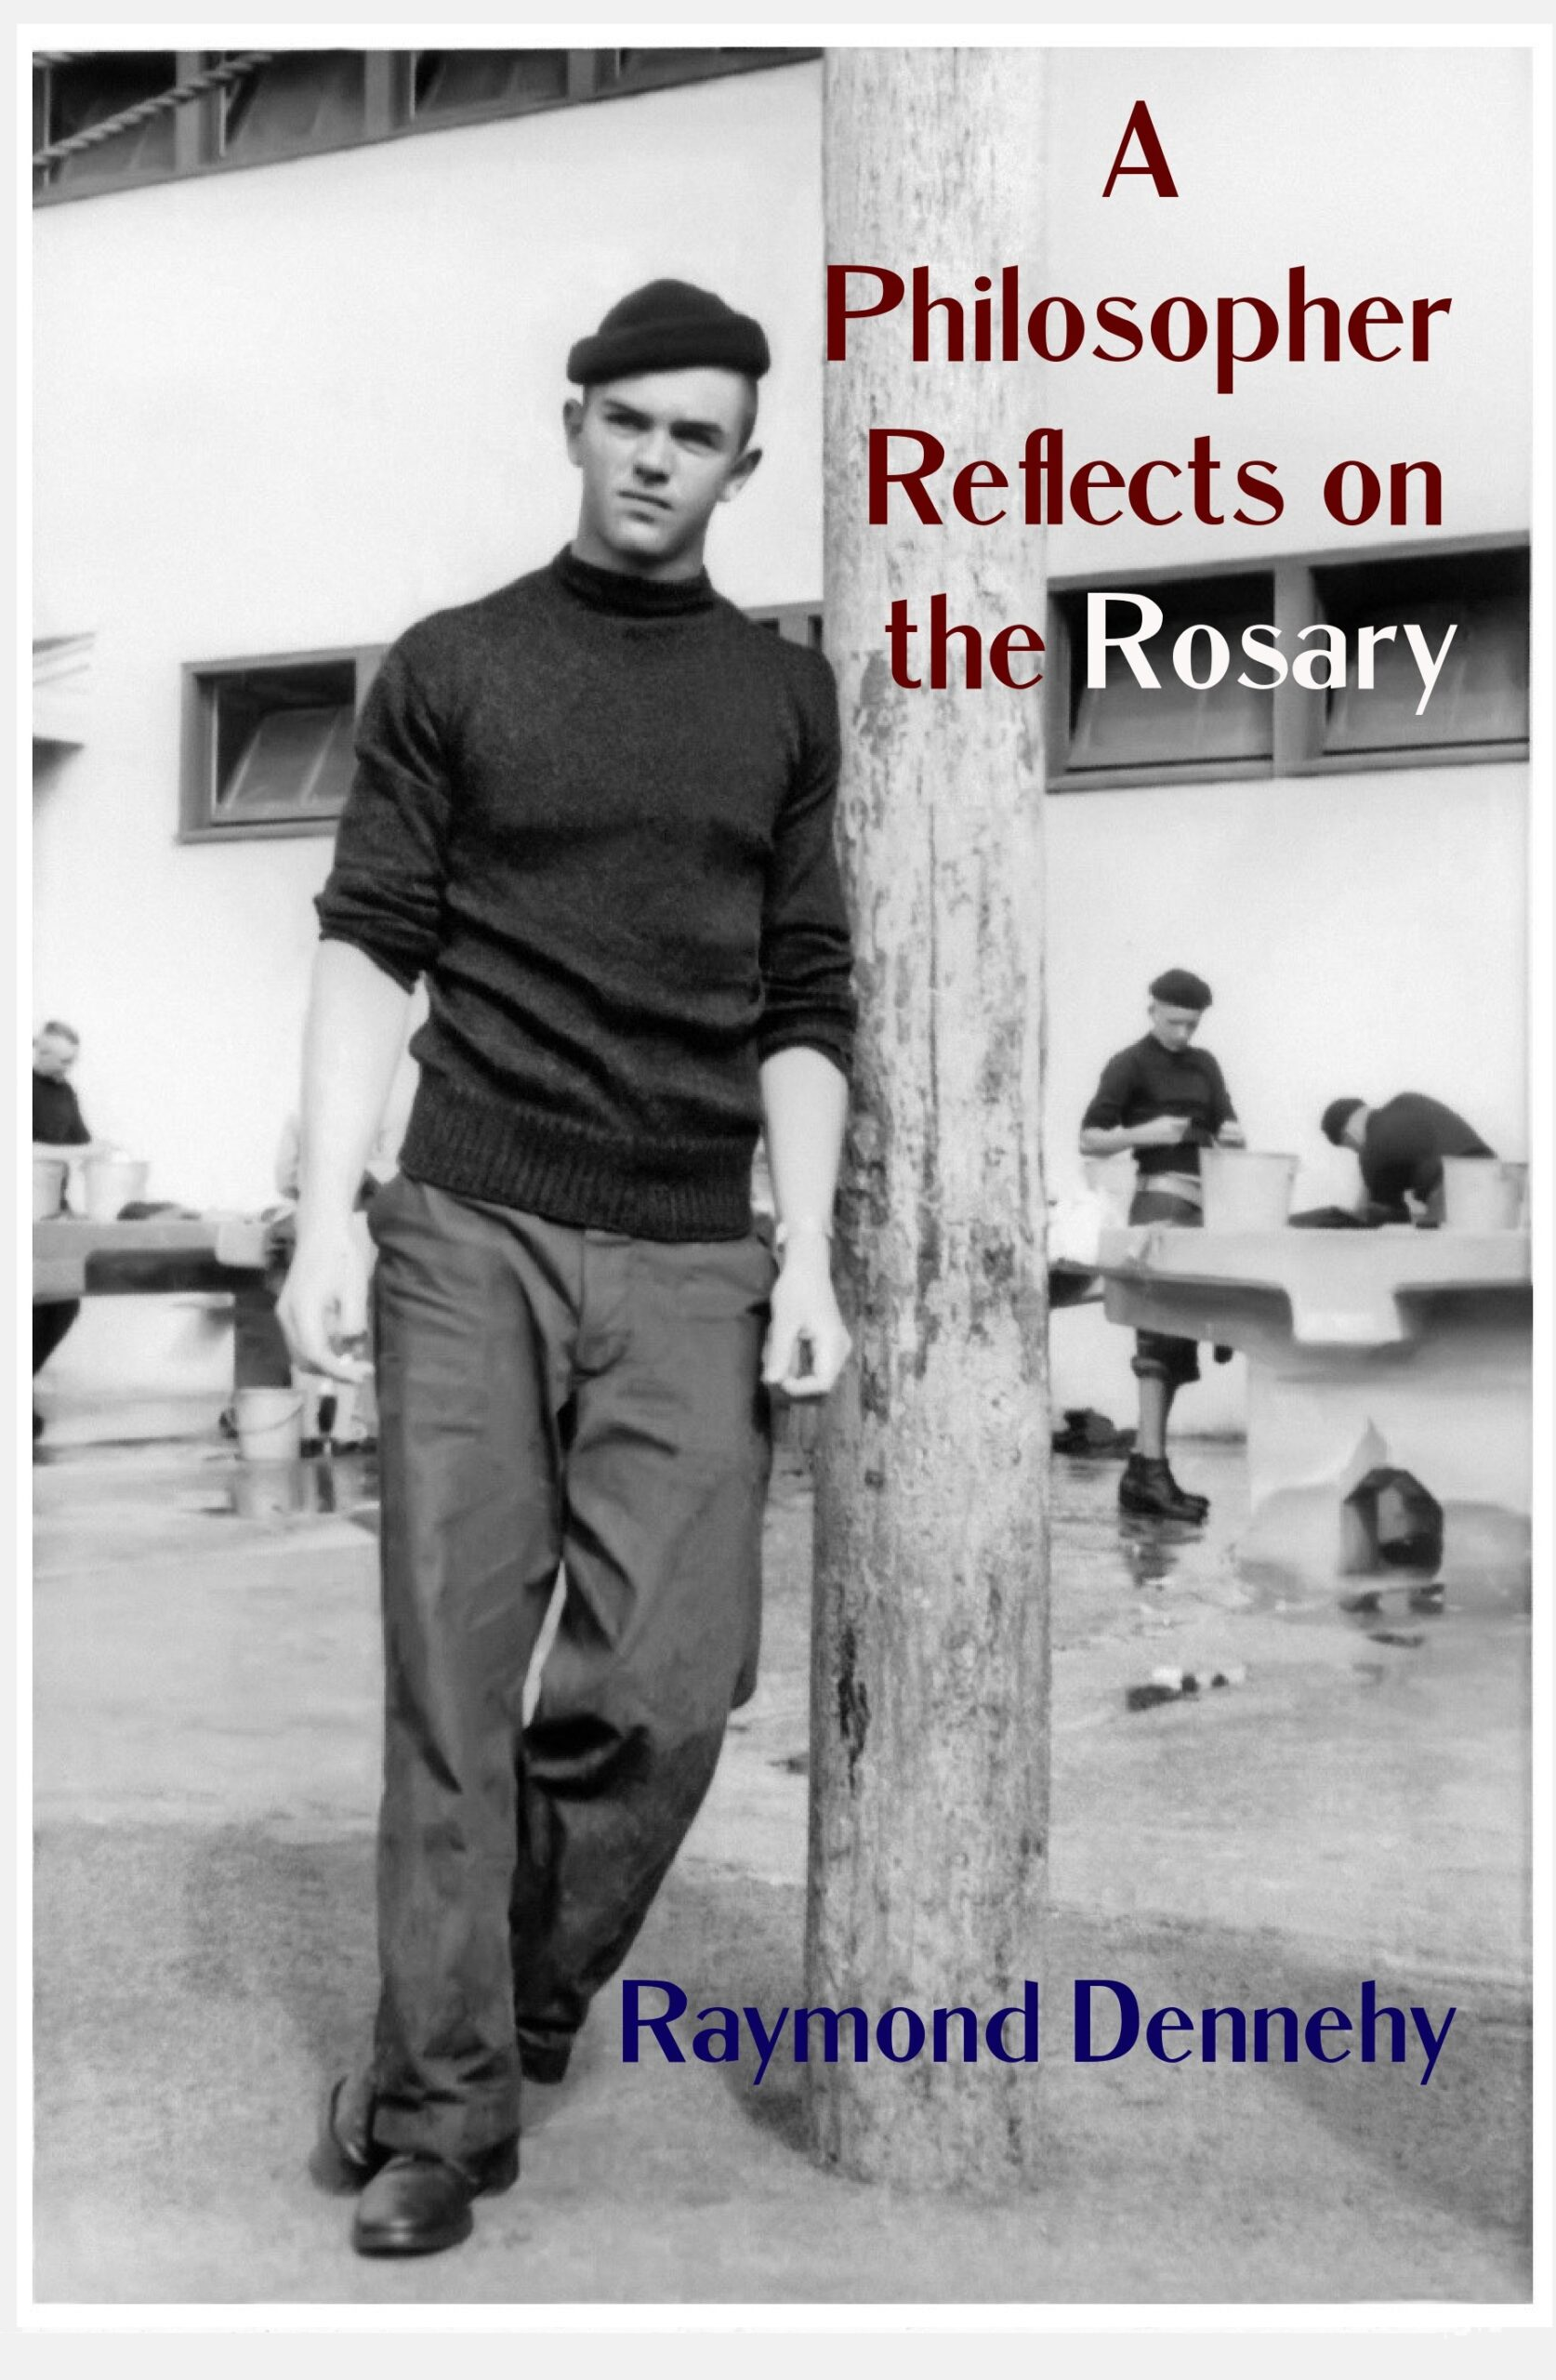 A Philosopher Reflects on the Rosary by Raymond Dennehy